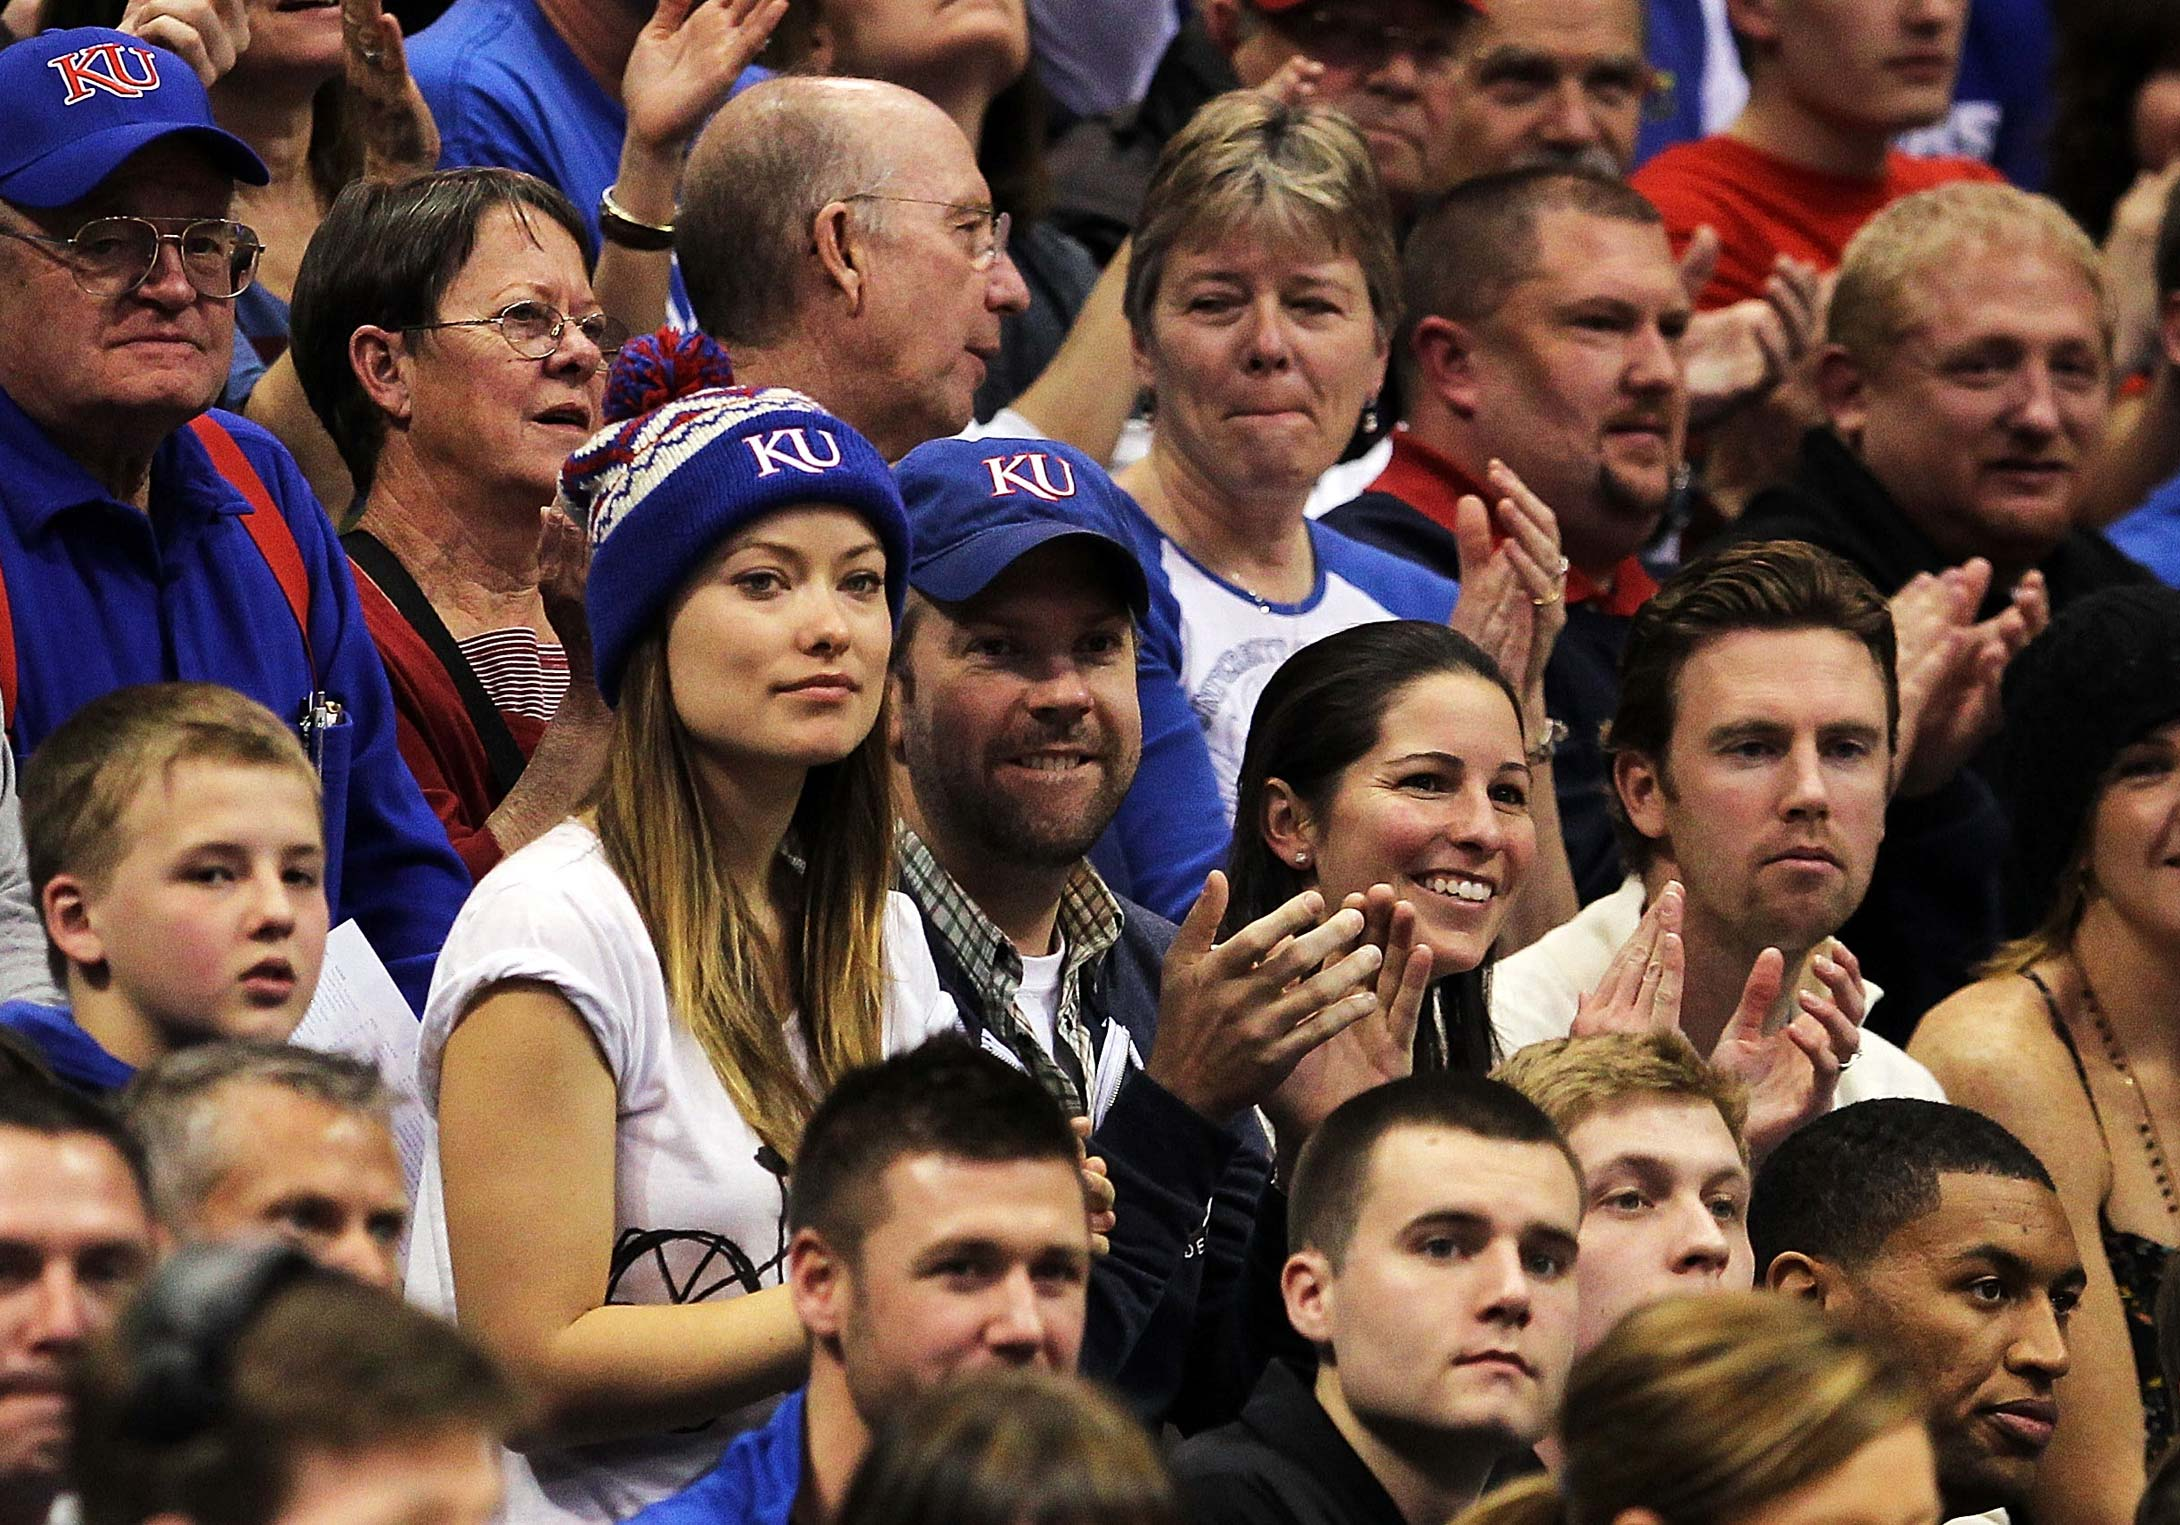 Olivia Wilde and Jason Sudeikis at the Howard Bison and Kansas Jayhawks game in 2011 in Lawrence, Kansas.